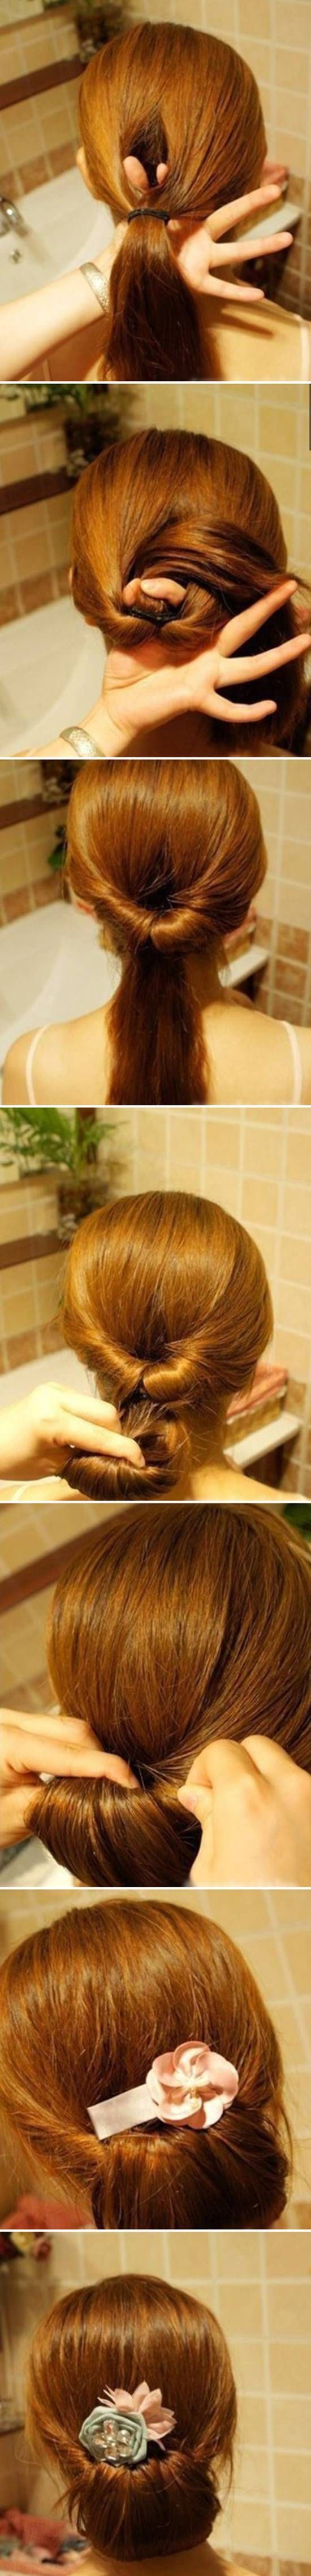 How to DIY Easy Twisted Hair Bun Hairstyle #fashion #beauty #hairstyle